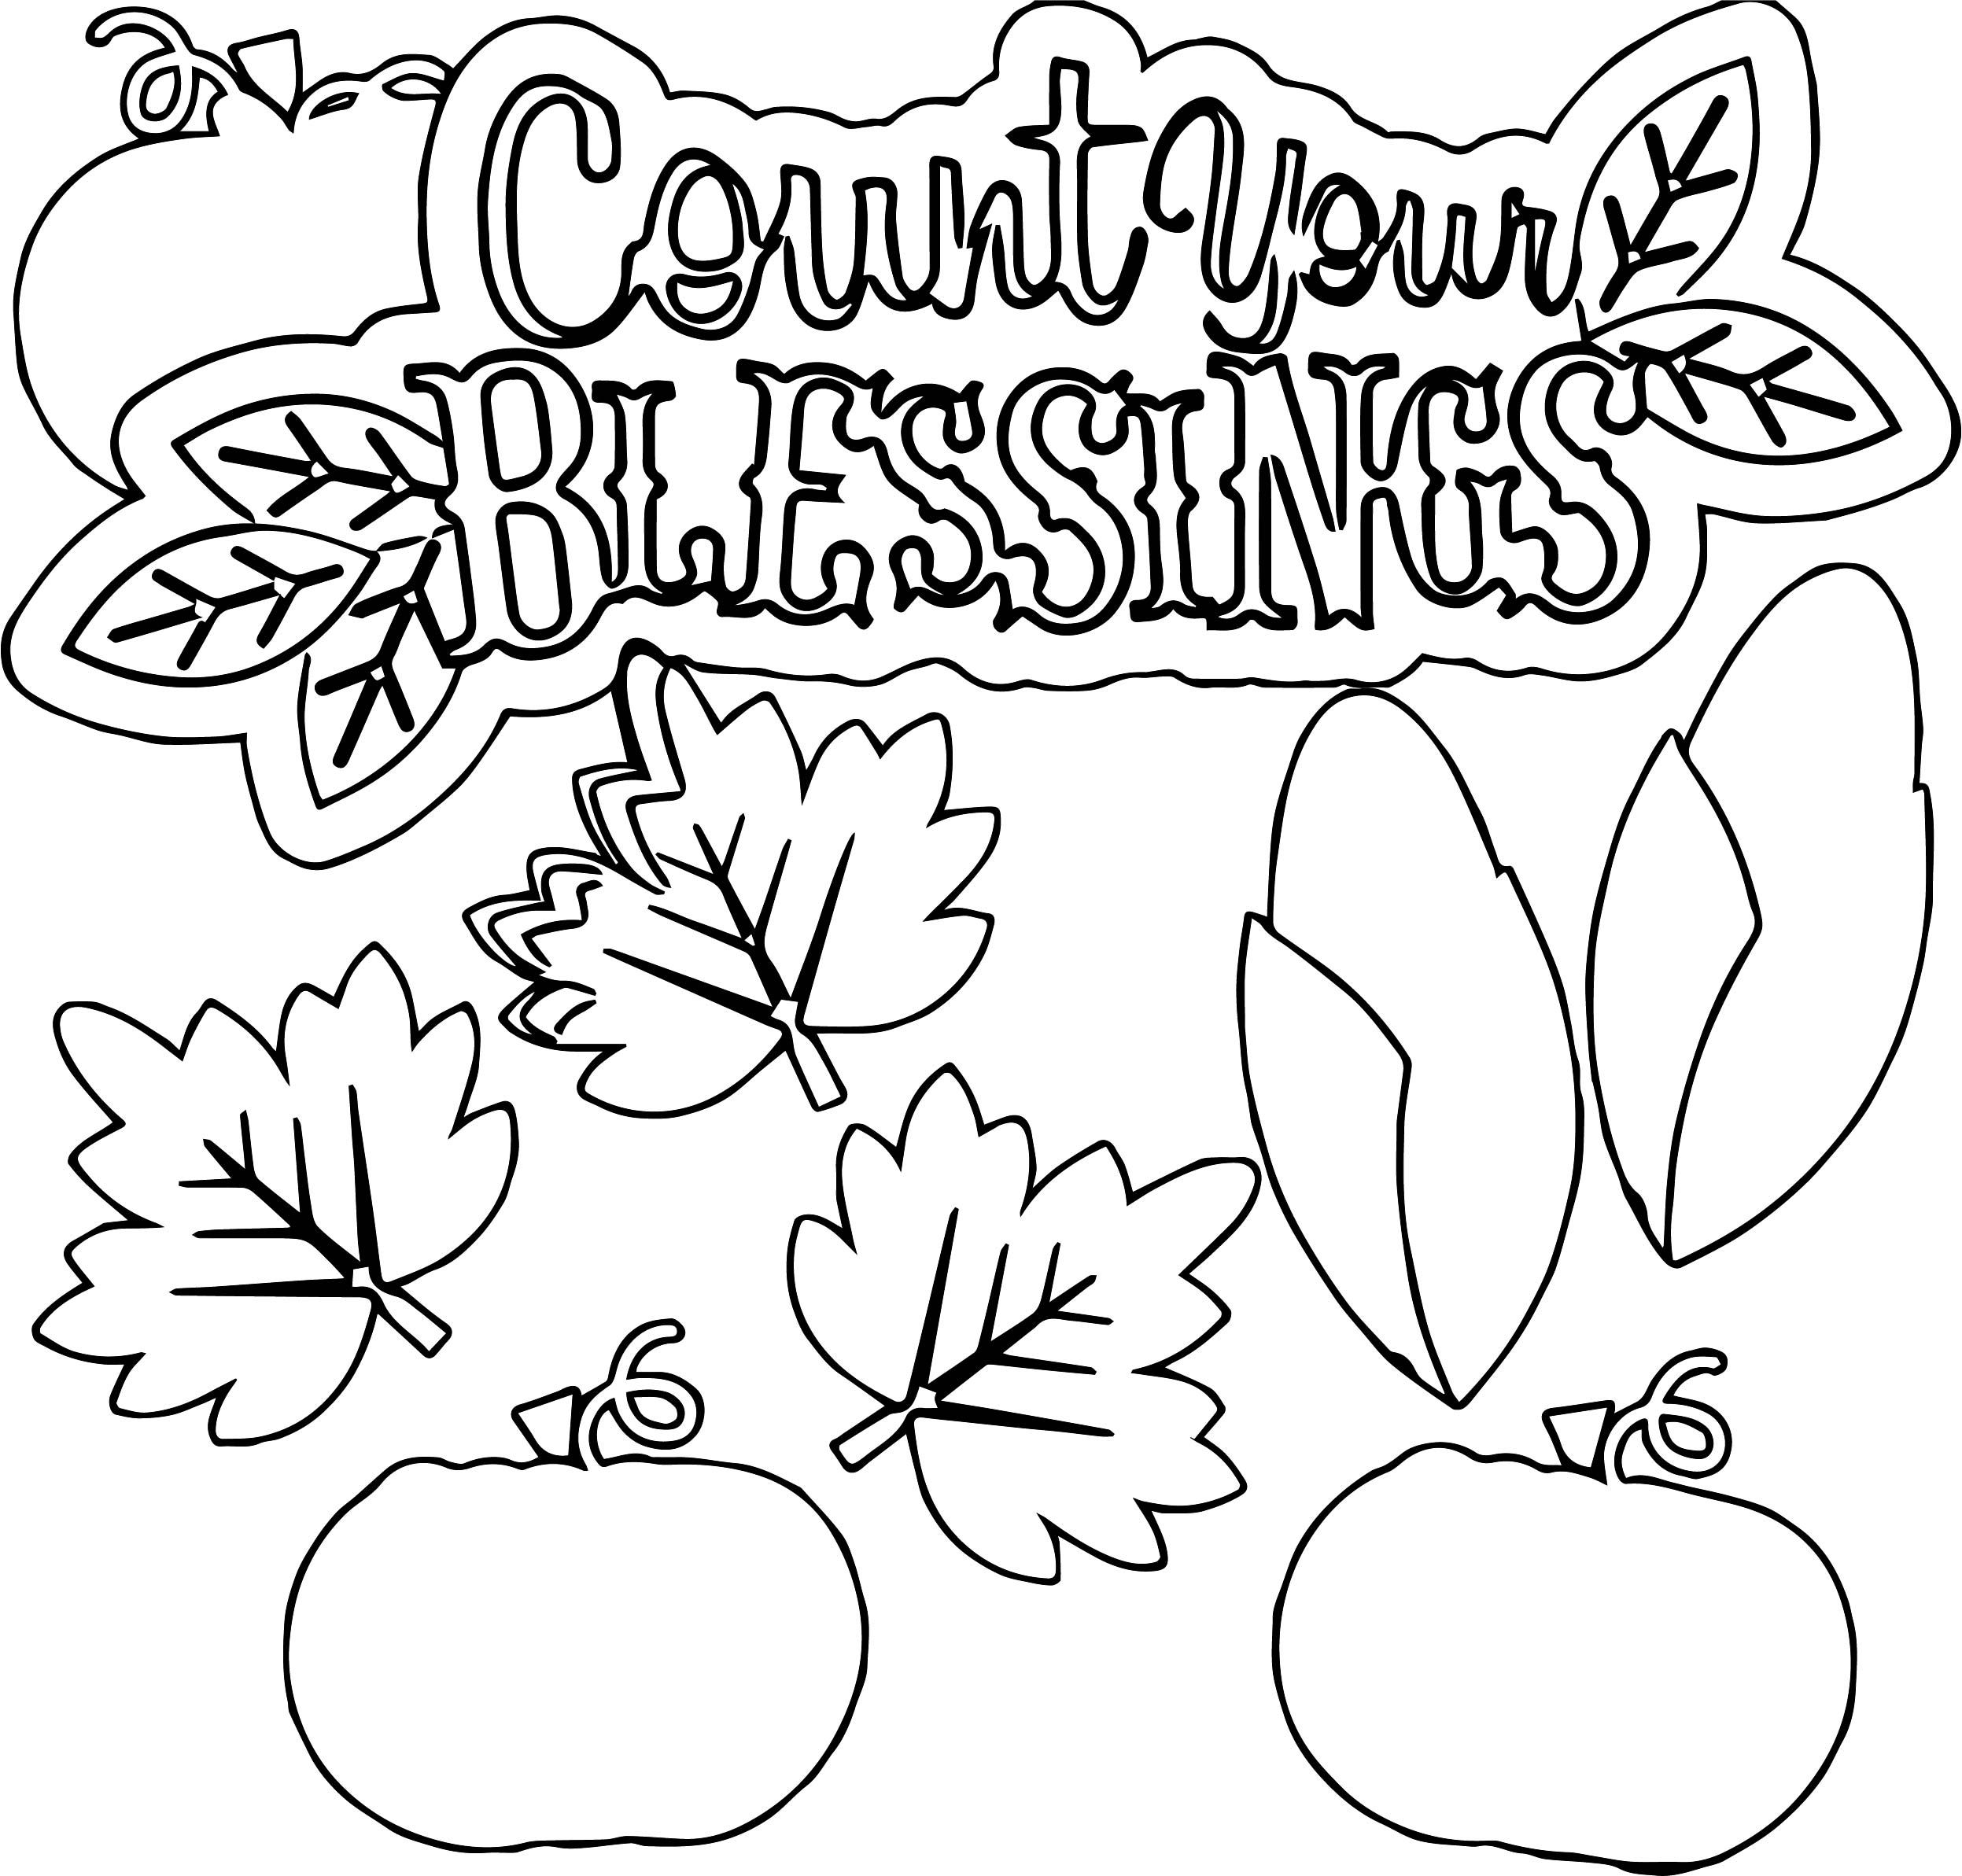 Awesome Large Count Your Blessings Coloring Page